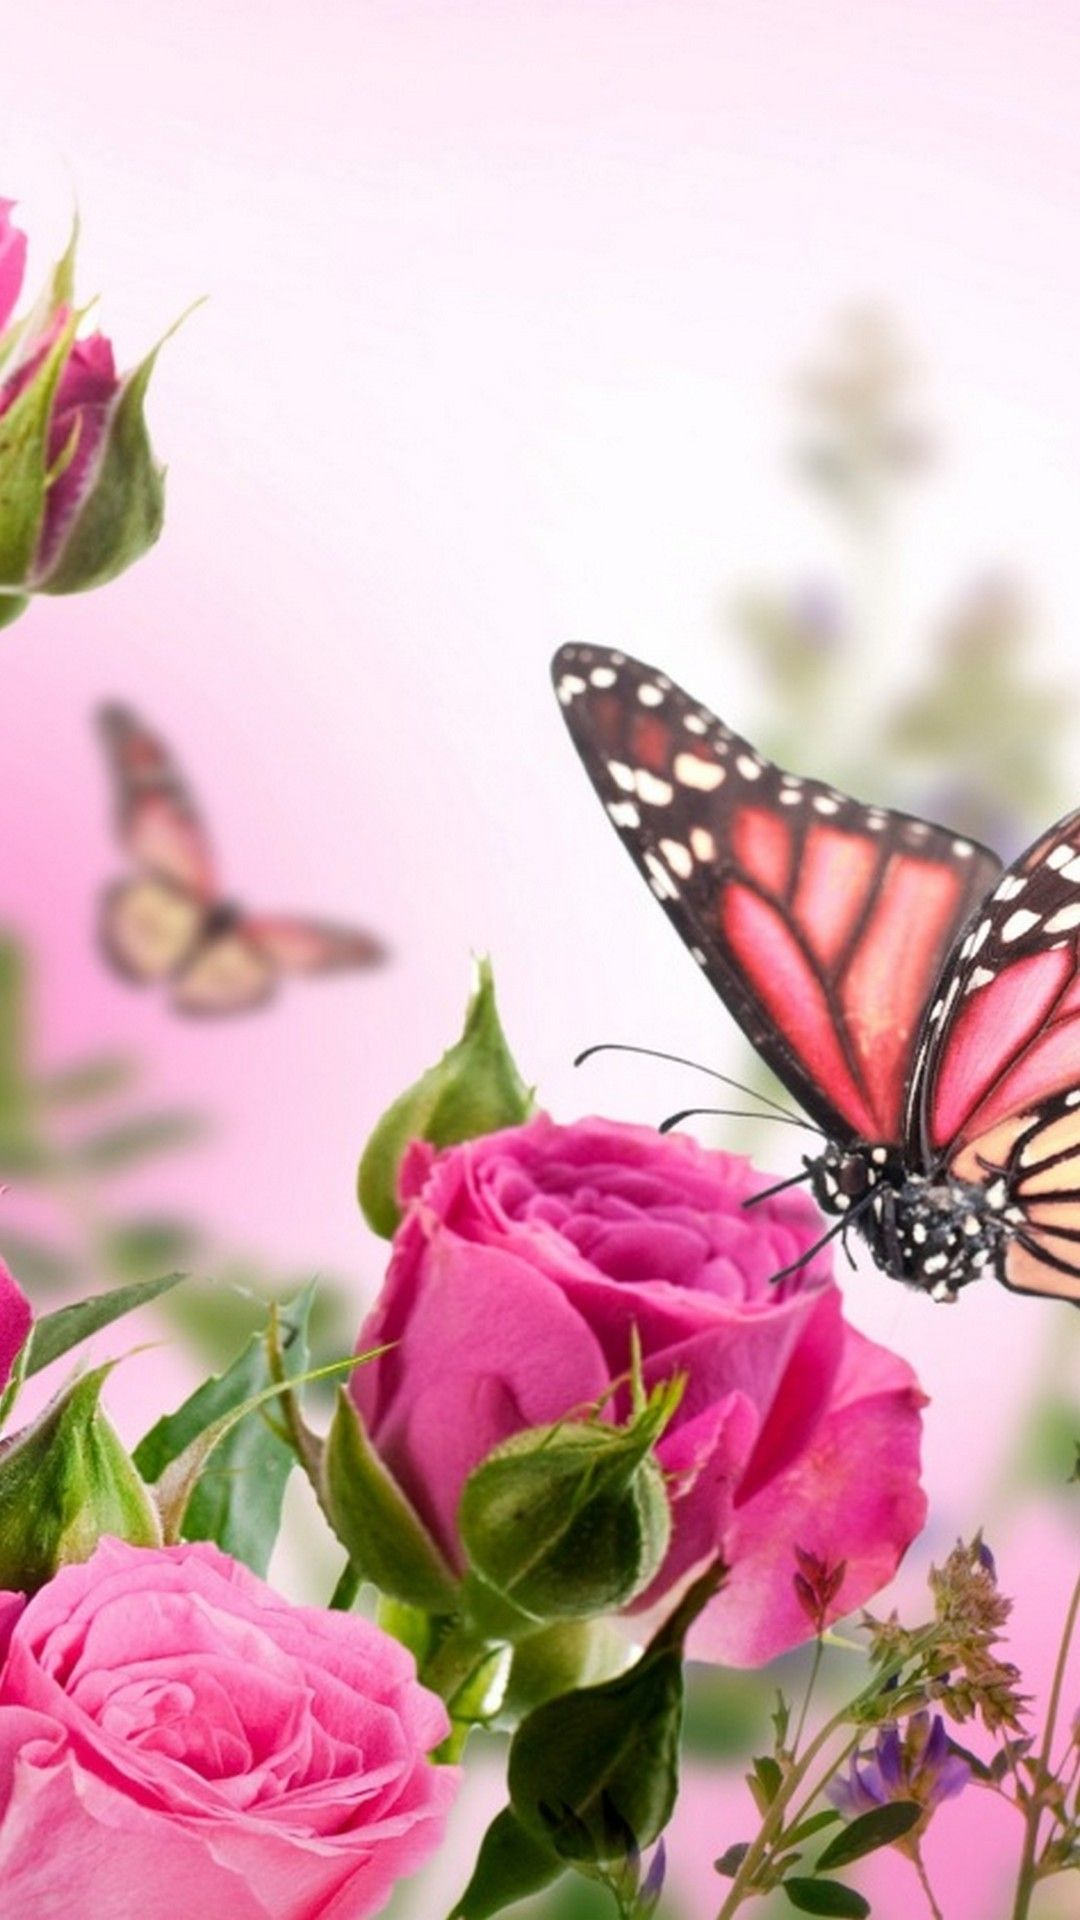 Pink Roses and Butterfly Wallpapers - Top Free Pink Roses ...